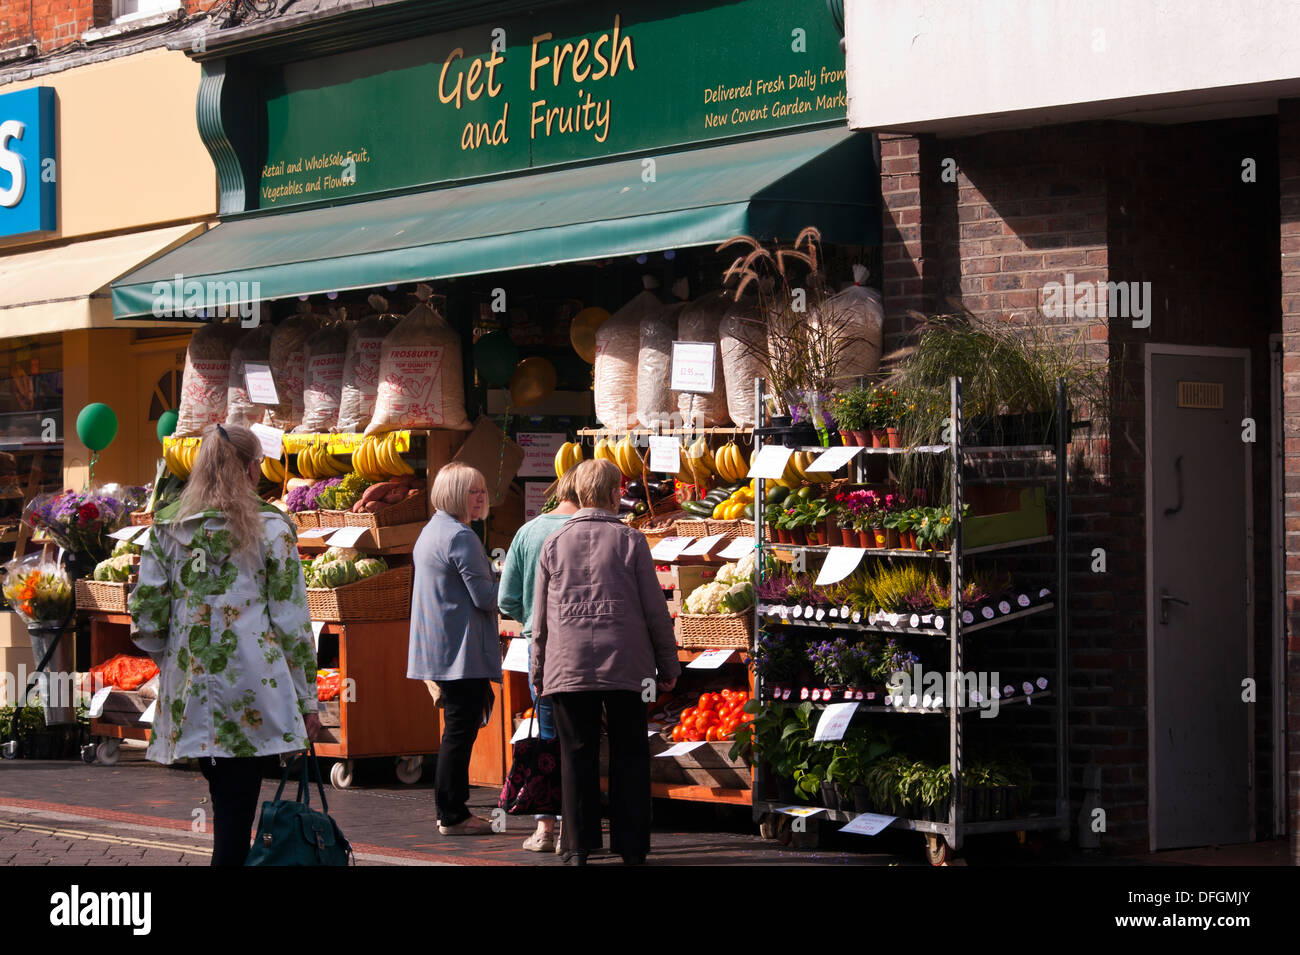 Customers Outside A greengrocers Fruit and Veg Shop Display UK - Stock Image